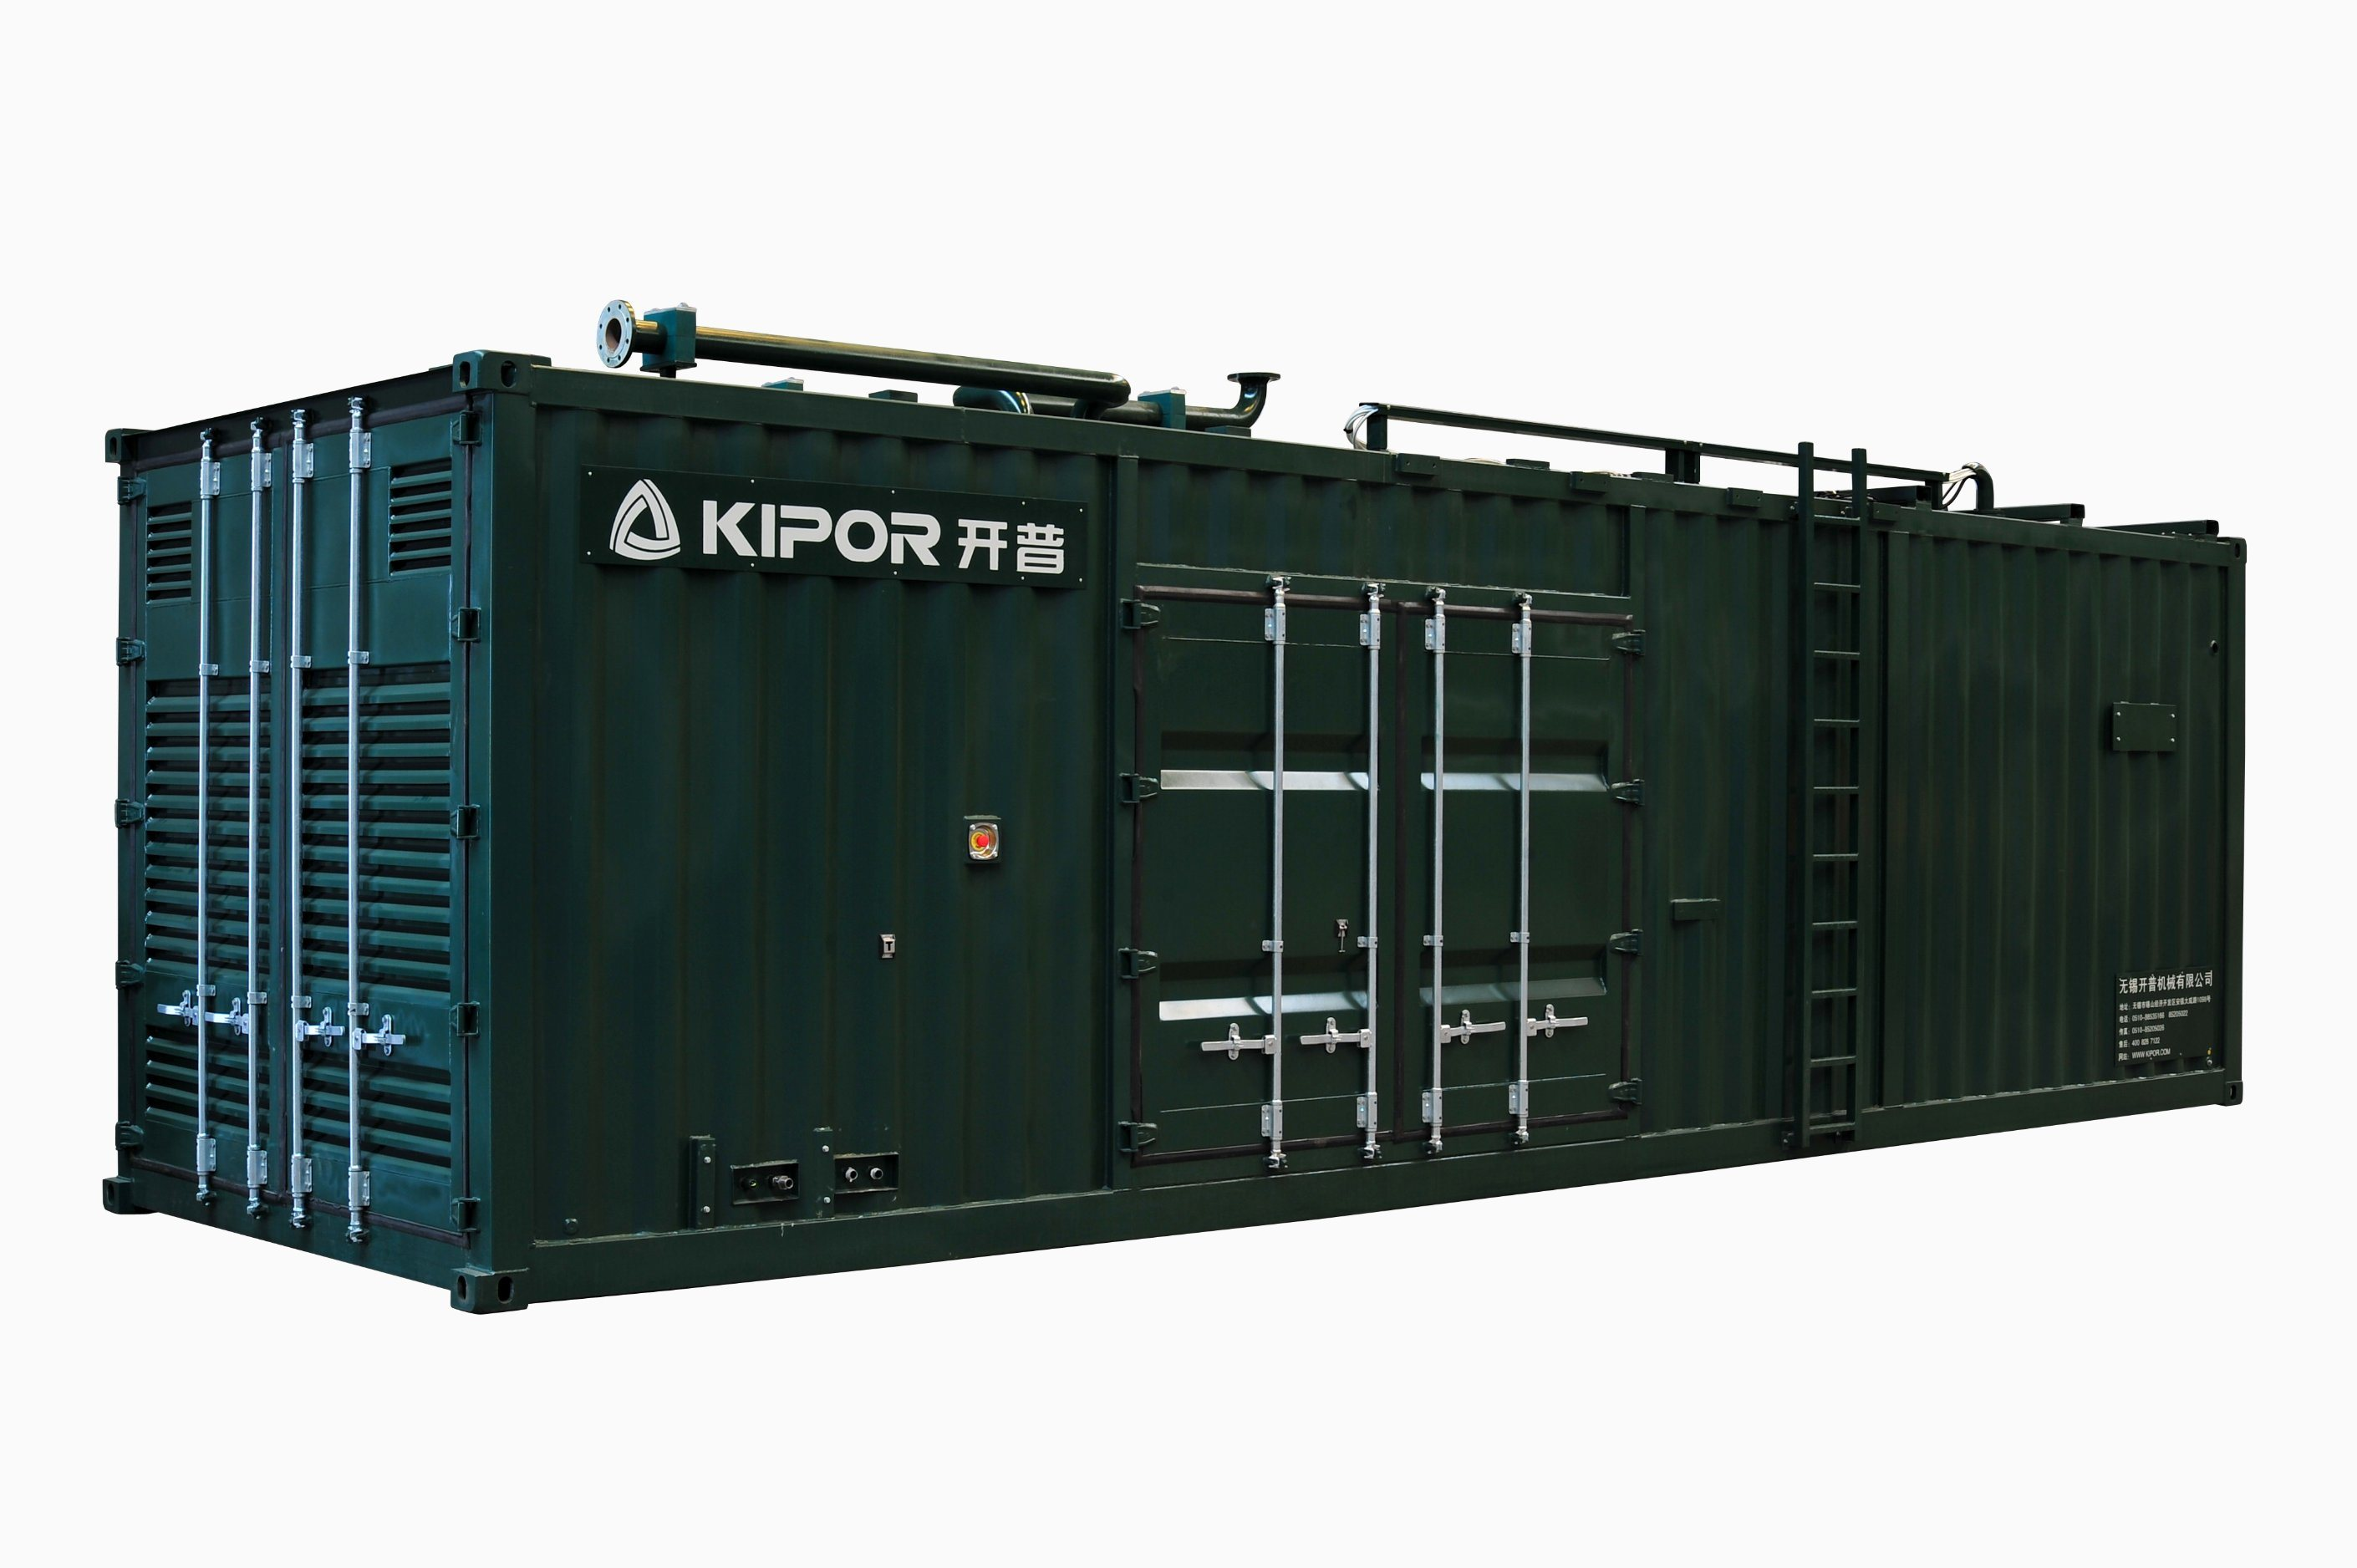 Kipor Natural Gas/Biogas/Landfill Gas Generator From 320kw to 1760kw